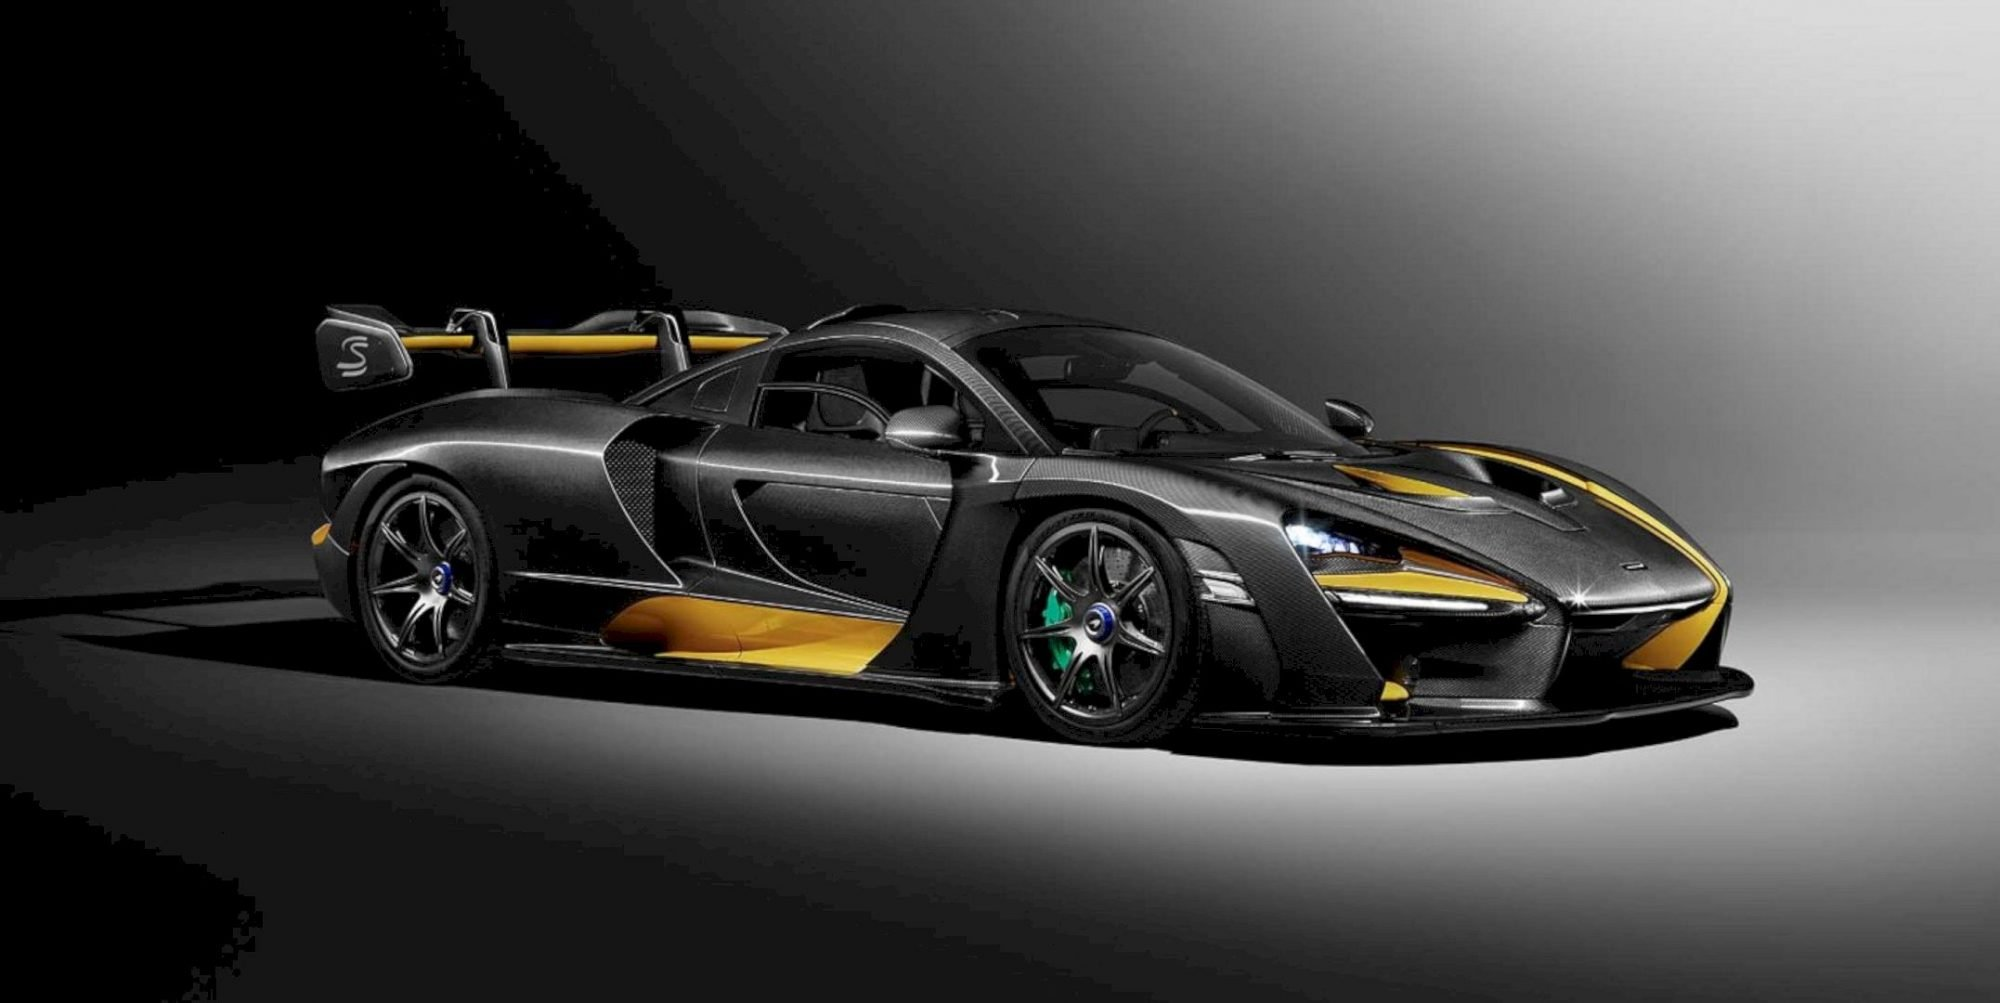 Behold For The Upcoming of The McLaren Senna: Challenge The Impossible